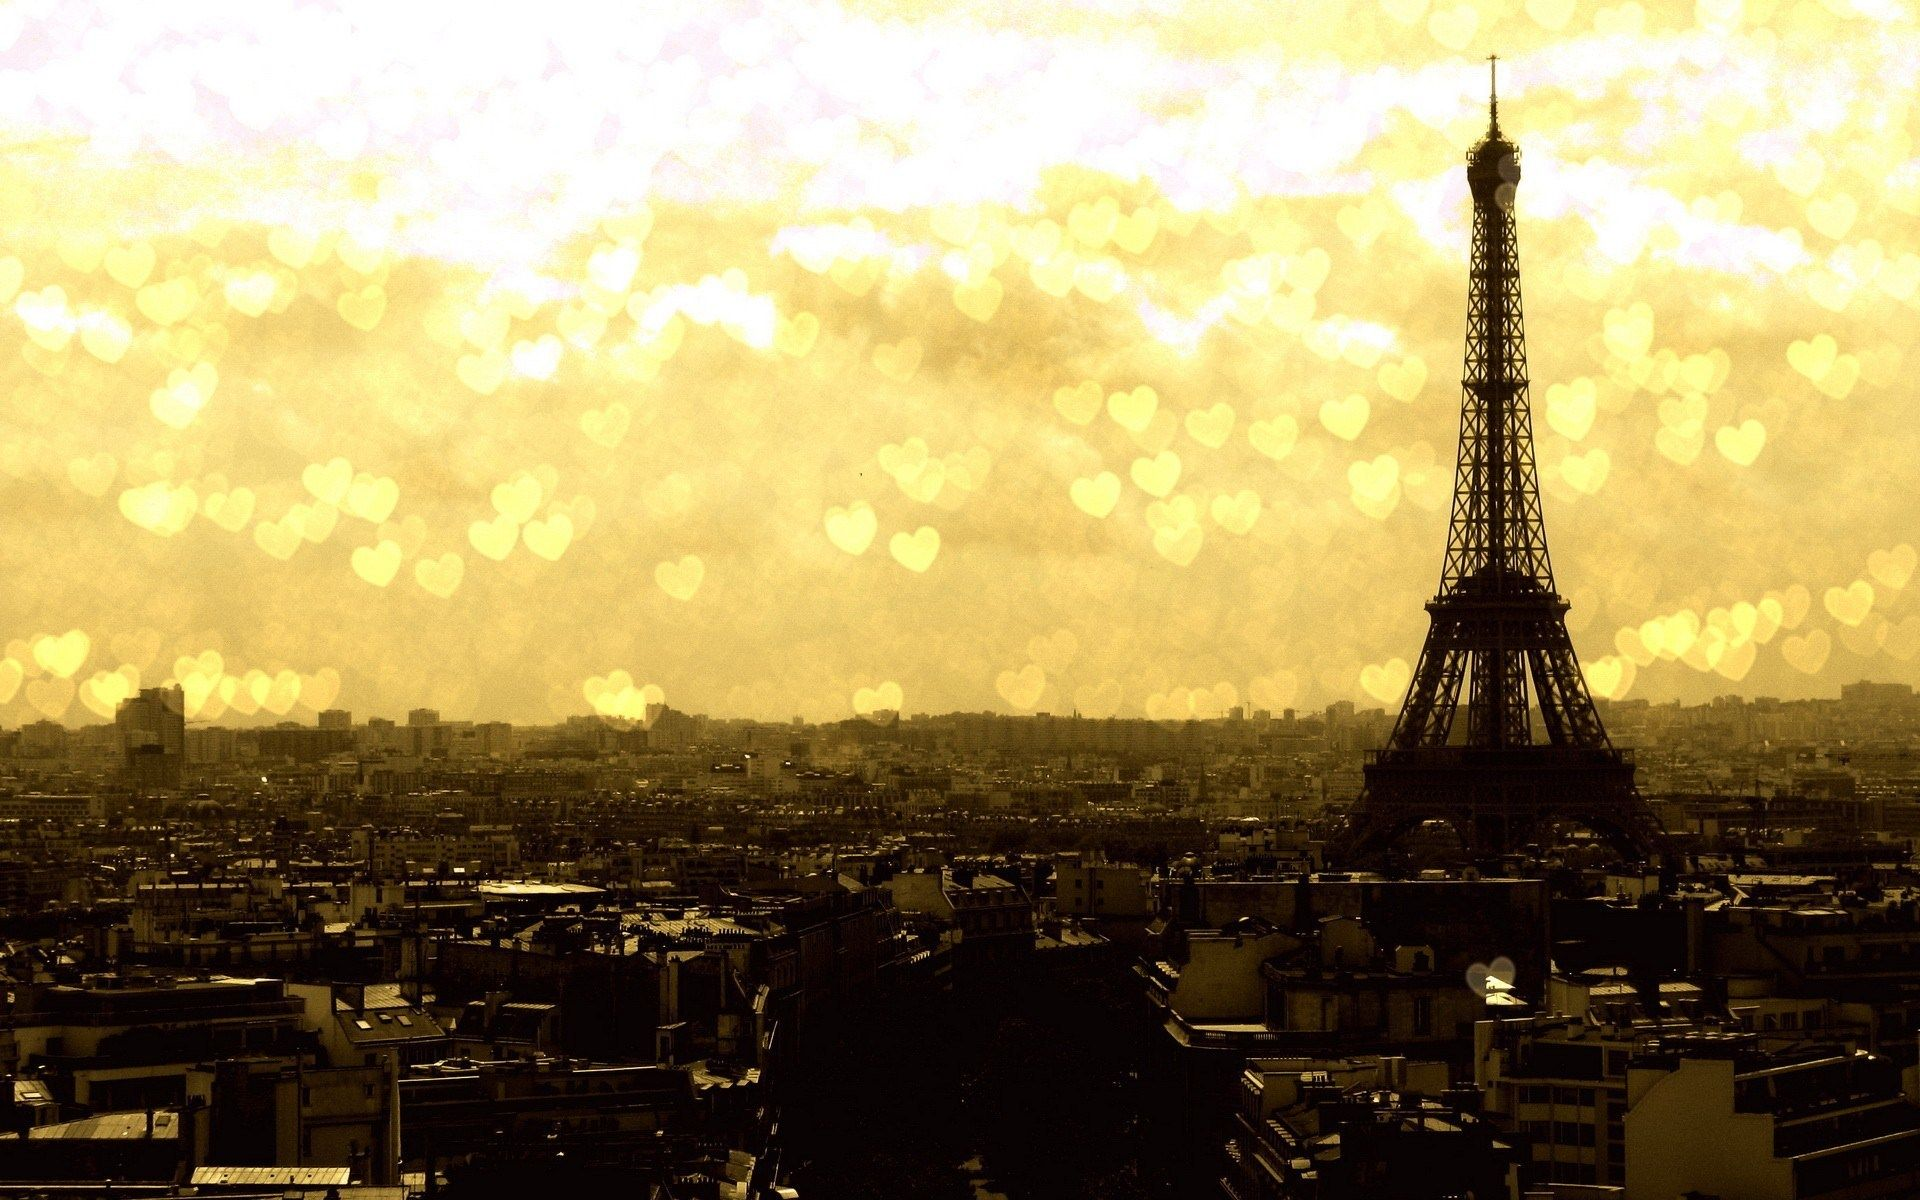 Eiffel tower which is located in Paris is considered as one of the